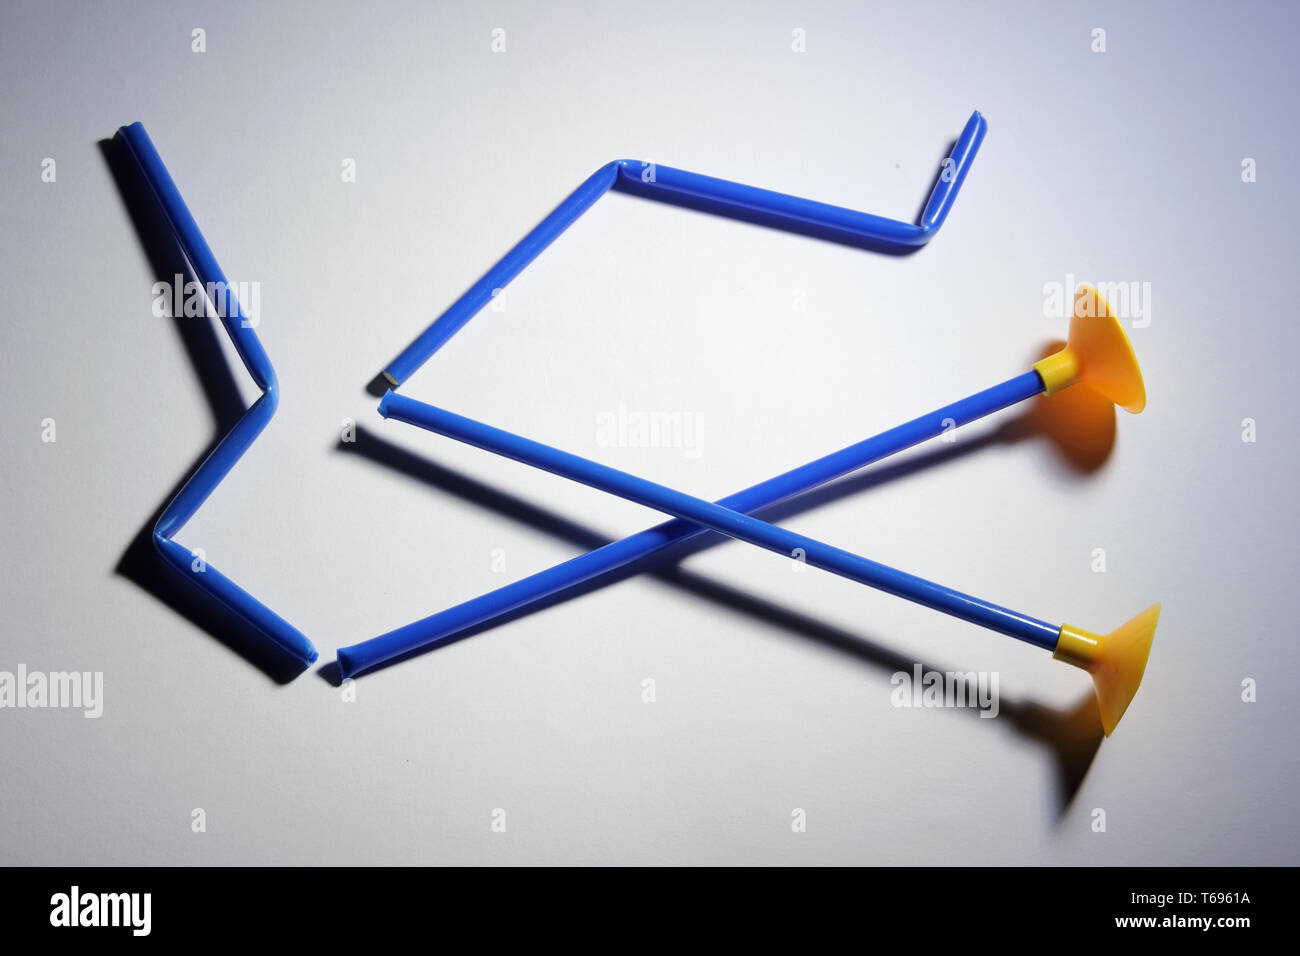 Broken Arrows with Suction Cups on White Background - Stock Image